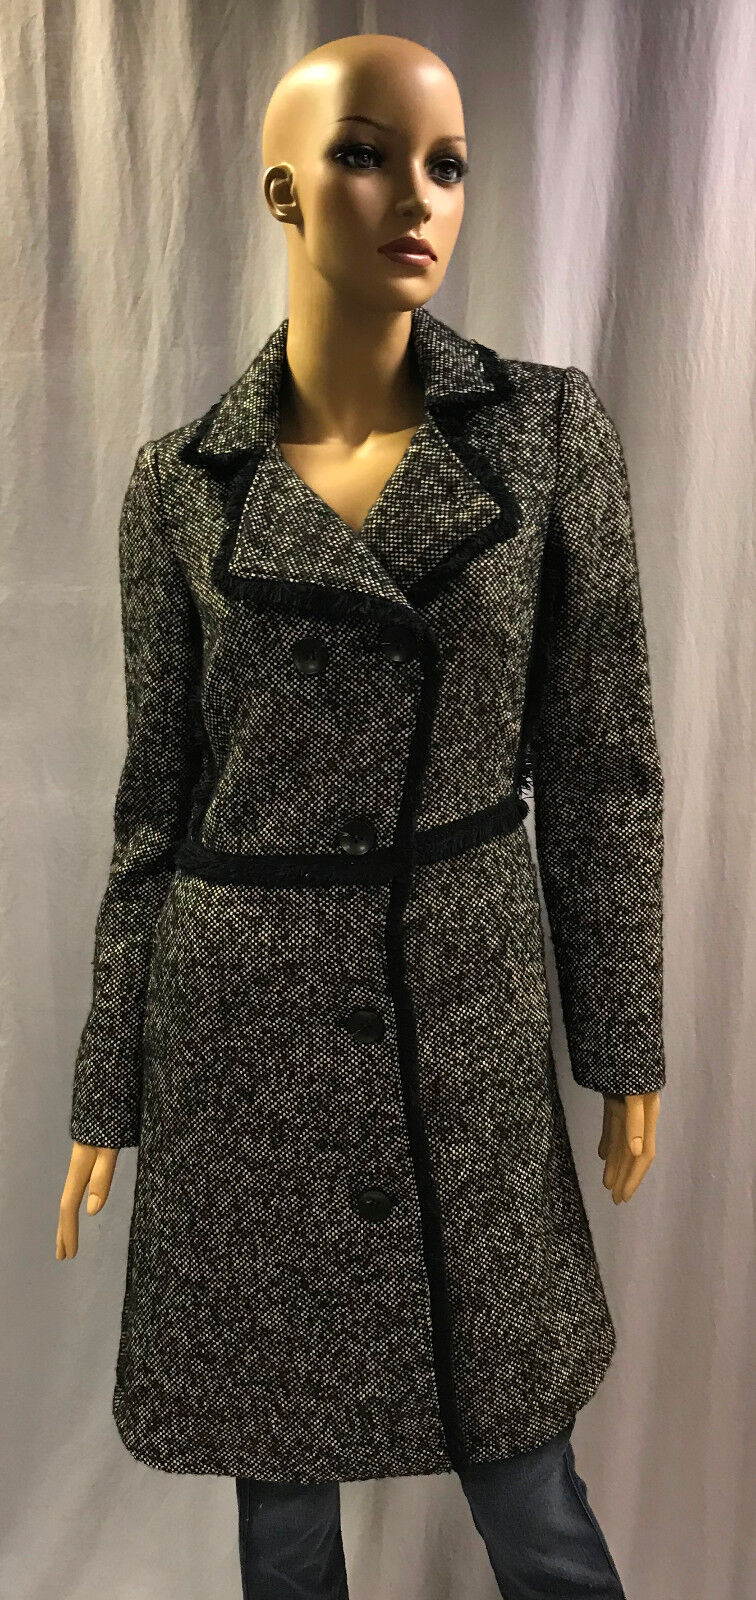 NEW THE LIMITED DOUBLE BREASTED WOOL BLEND TWEED COAT SZ PETITE M MEDIUM